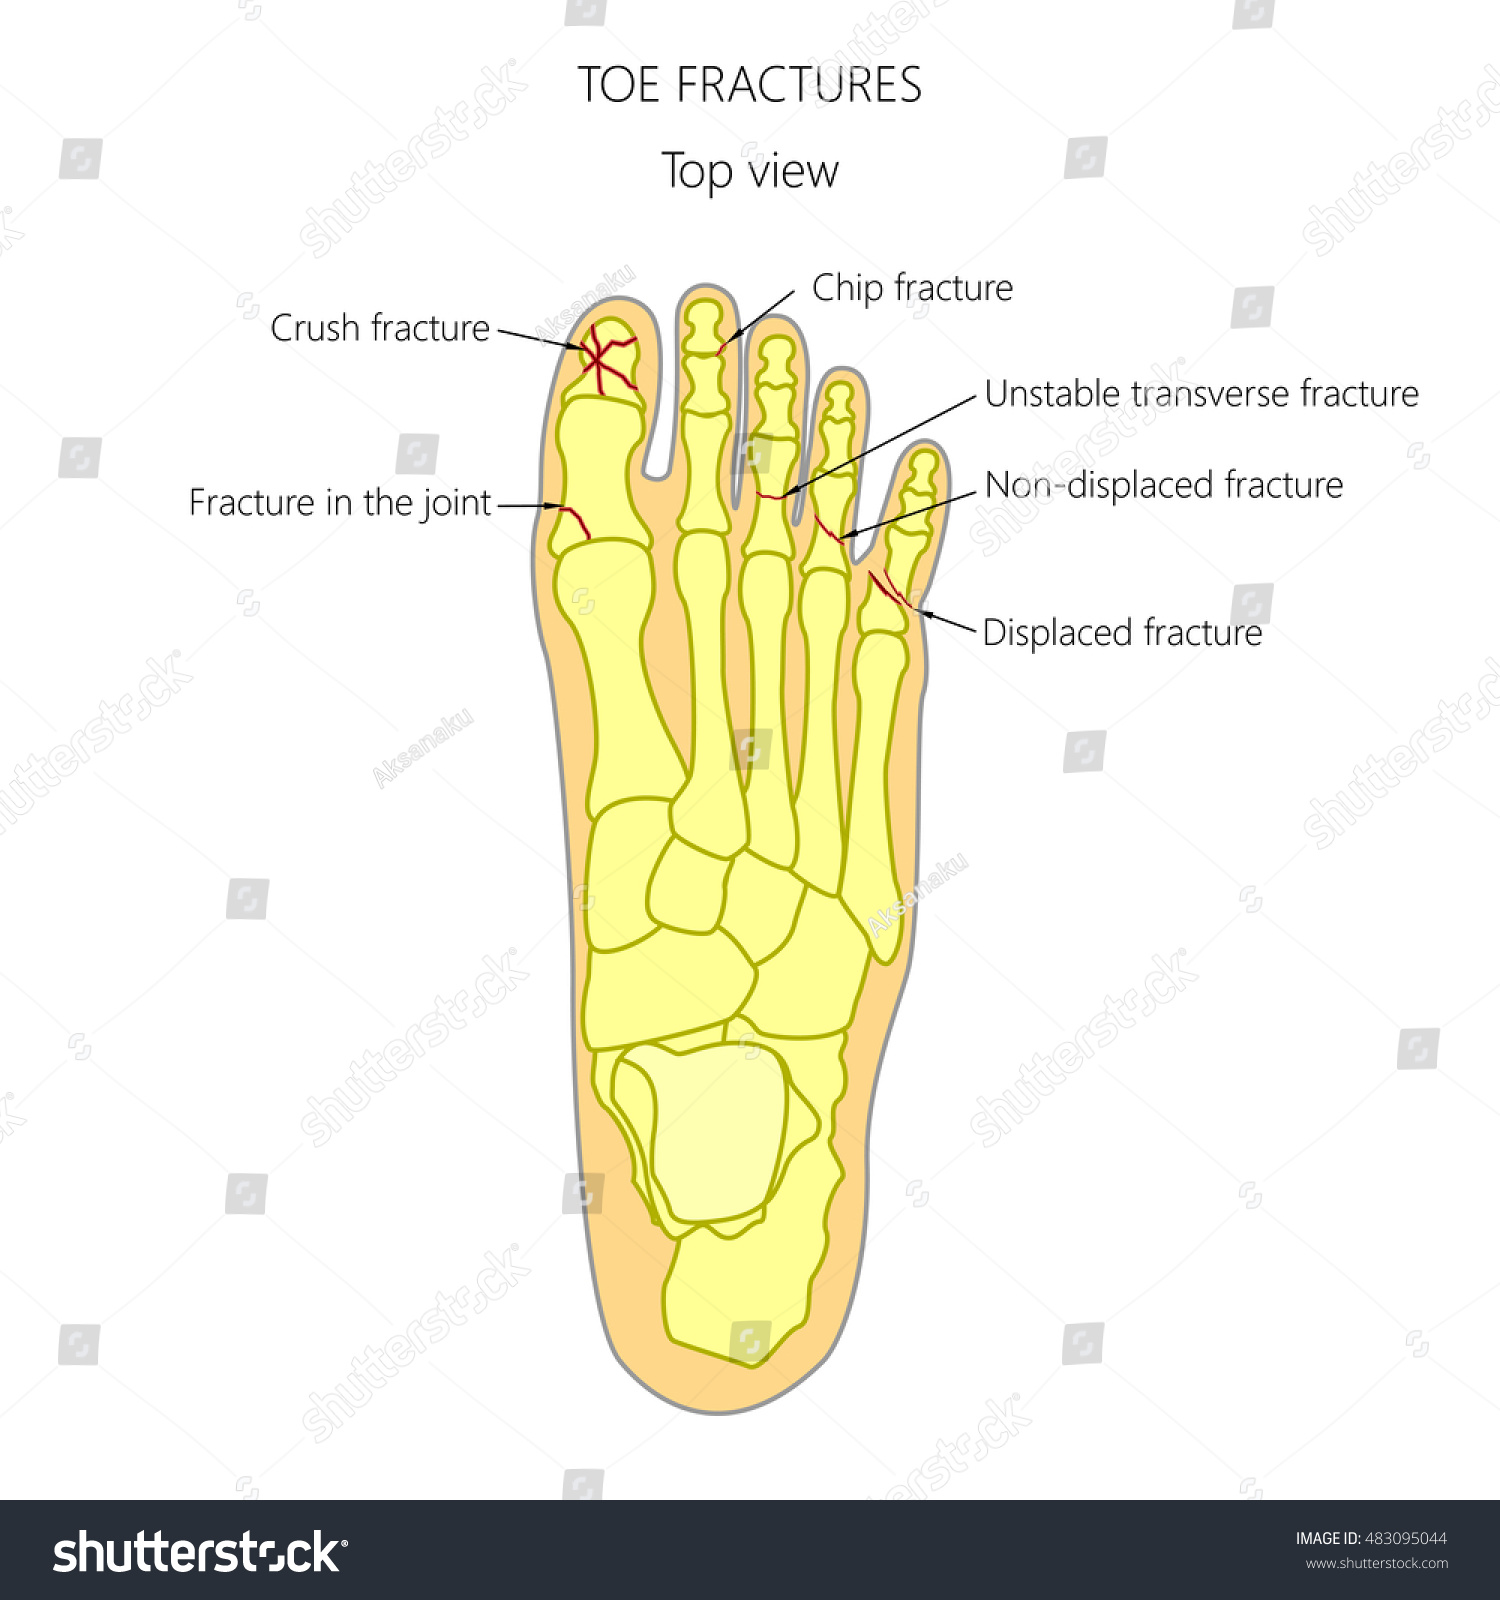 Vector Illustration Diagram Toe Fracture Types Stock Vector Royalty